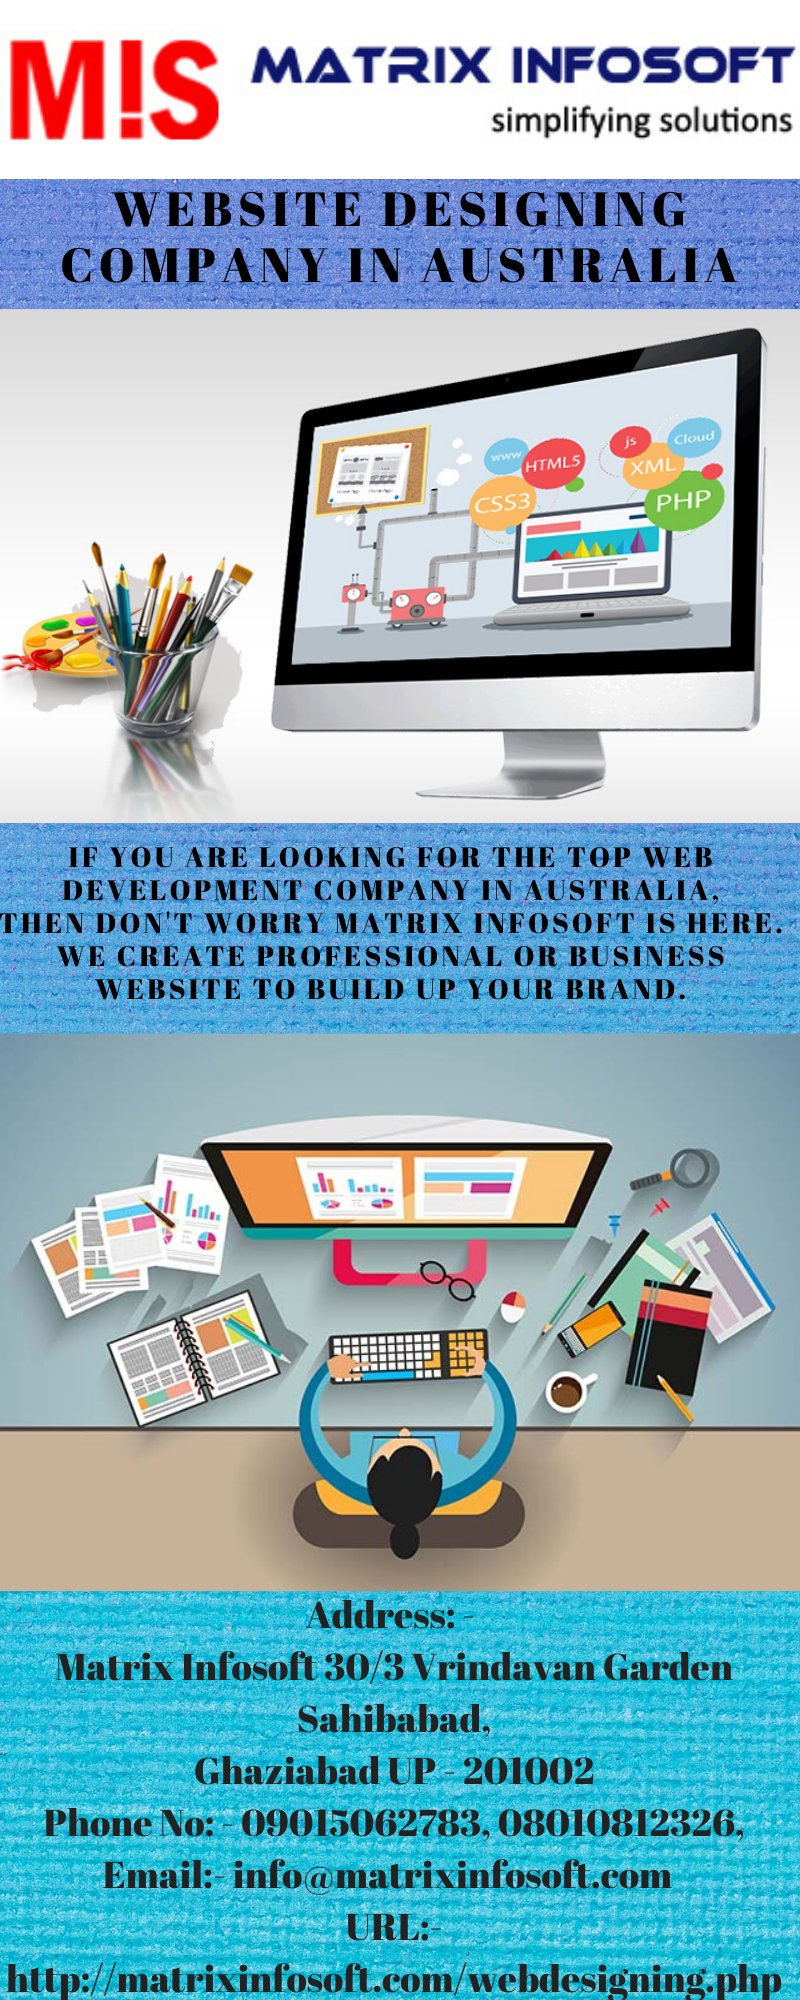 Website Designing Company In Australia If You Are Looking For The Top Web Development Company In Austra In 2020 Website Design Web Development Company Business Website